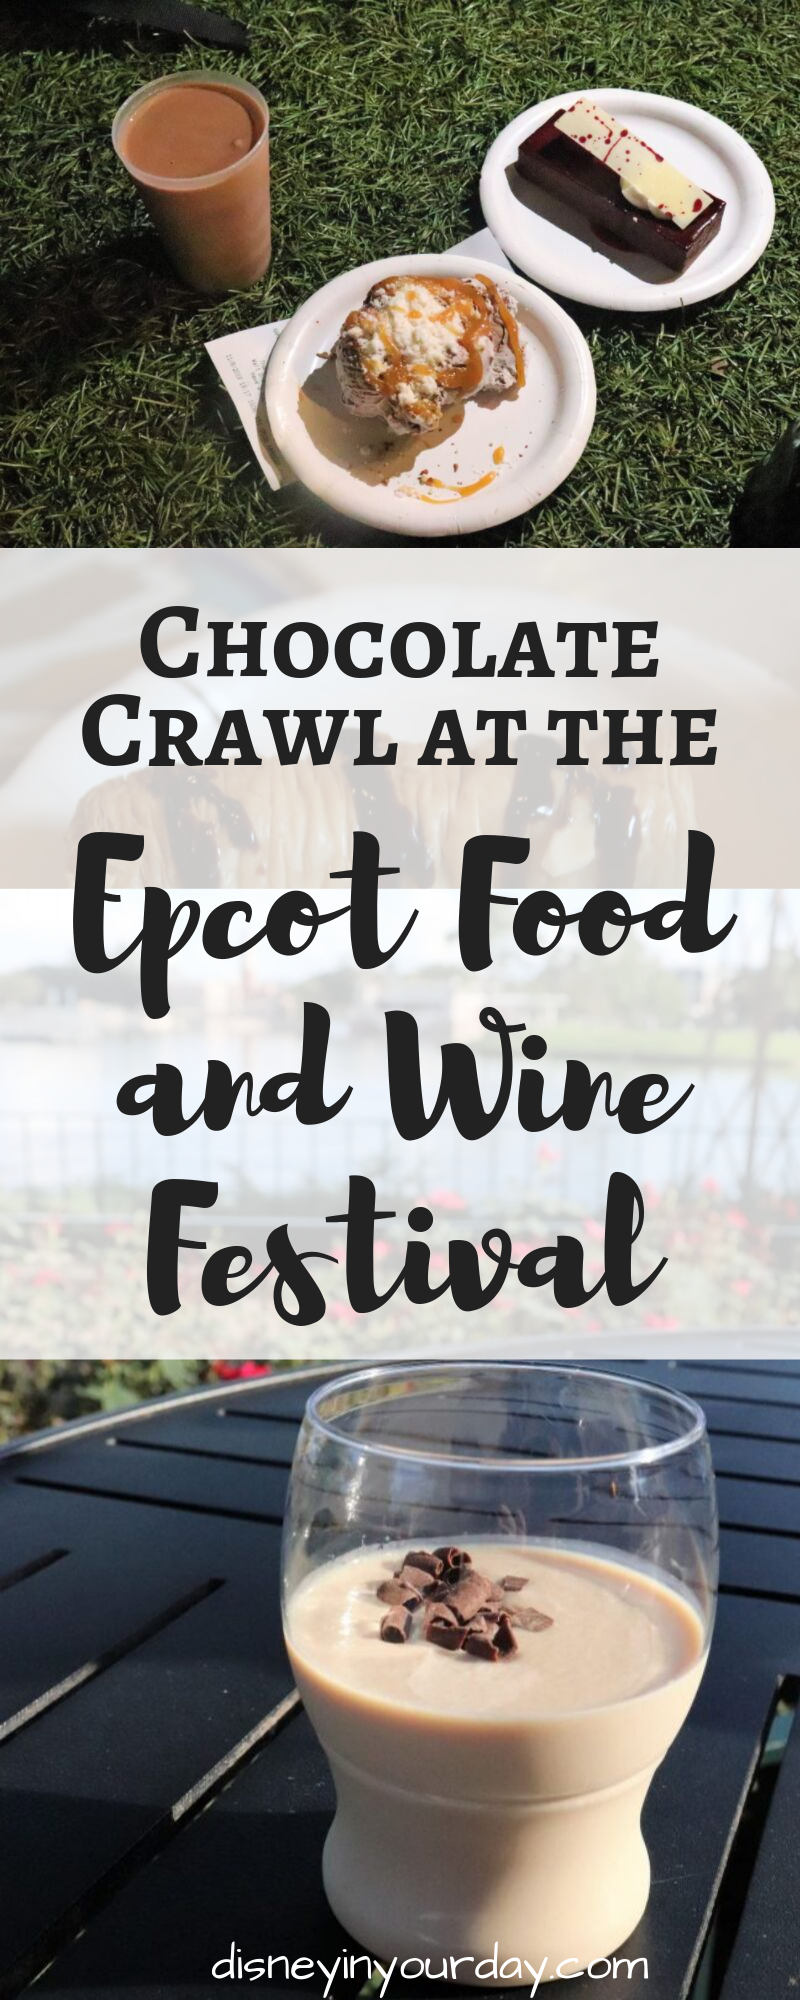 chocolate at Epcot Food and Wine - Disney in your Day